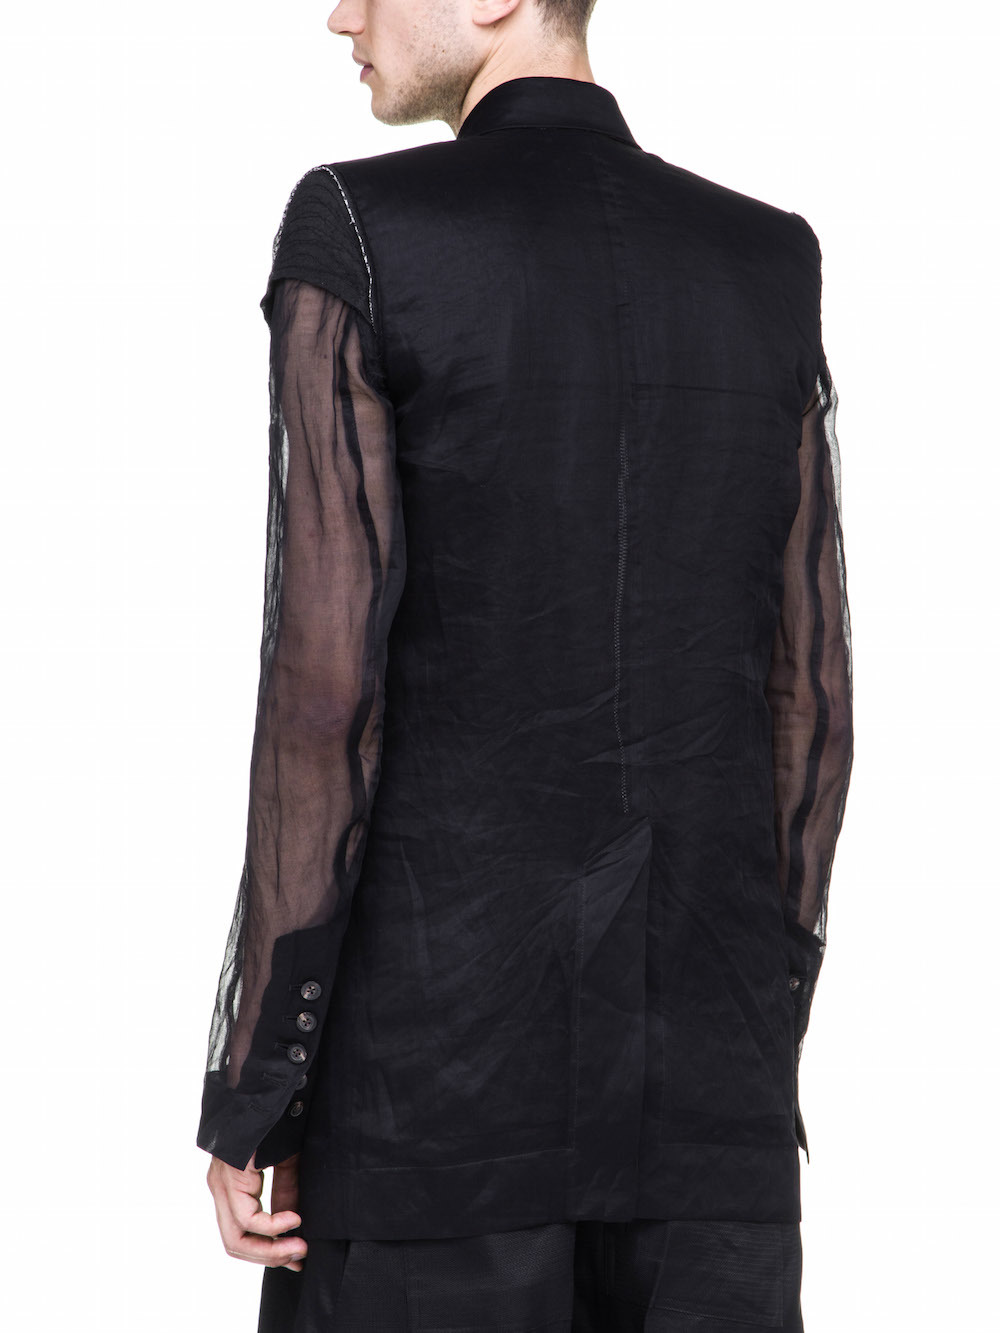 RICK OWENS BERGER JMF JACKET IN BLACK COTTON ORGANDIS